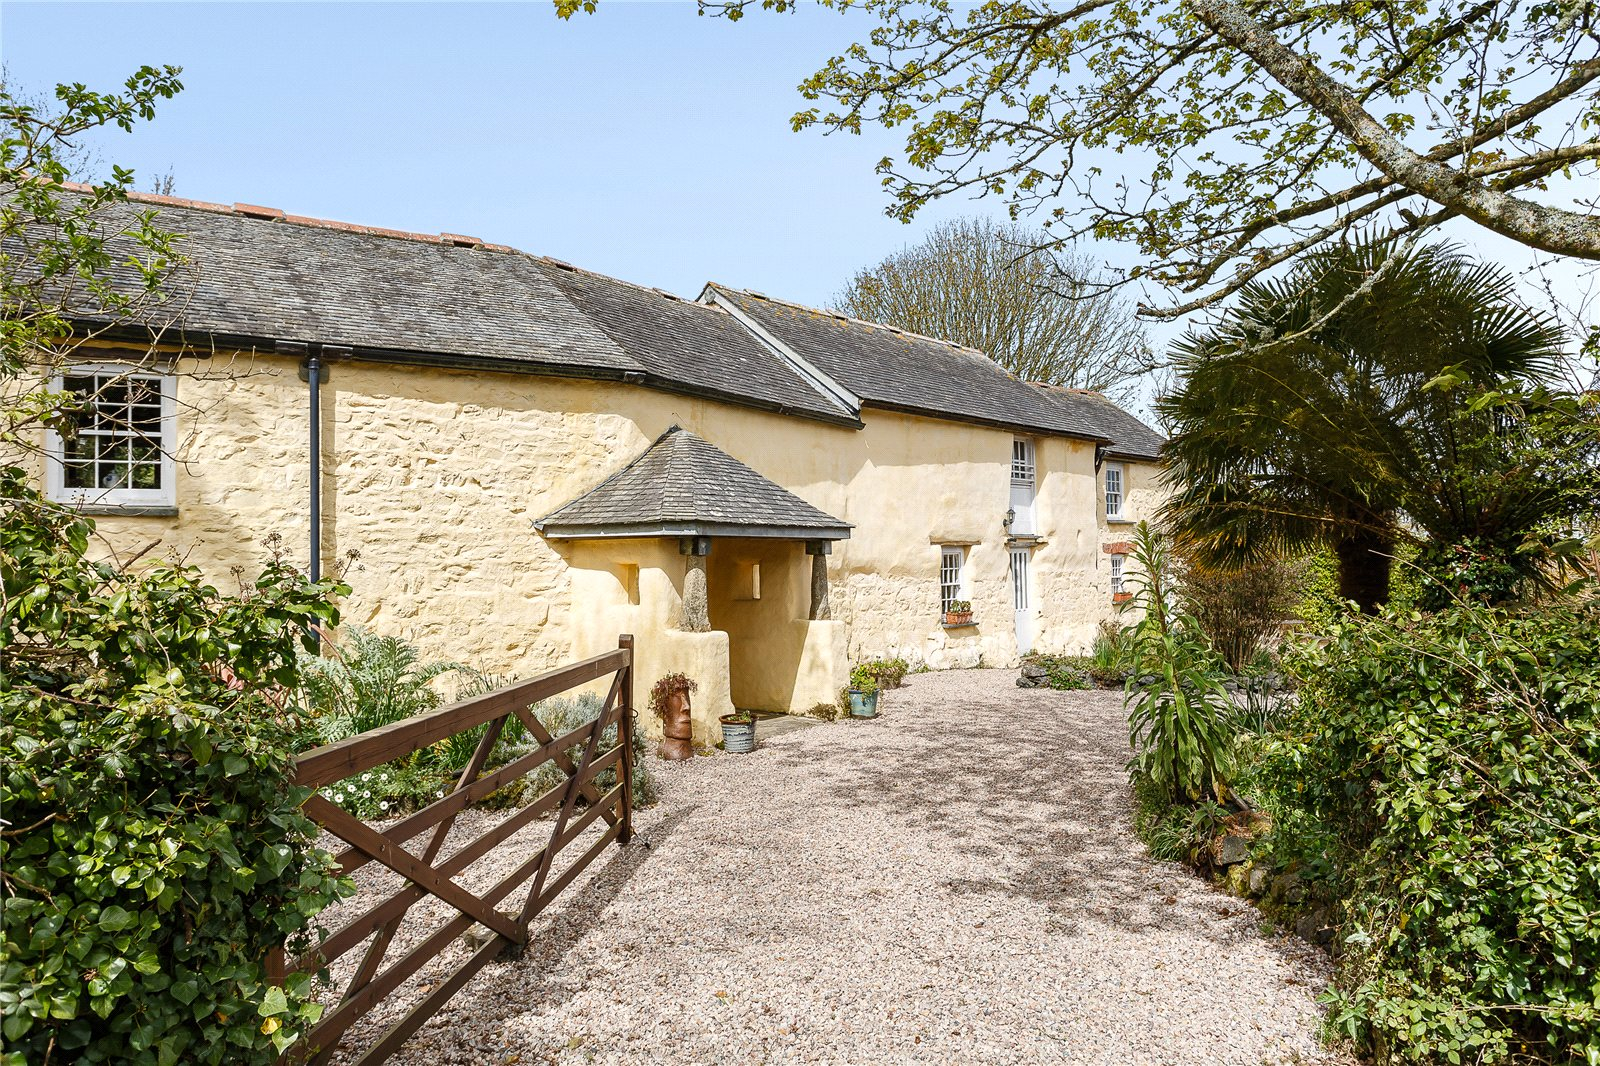 Single Family Home for Sale at Tregarne, Manaccan, Helston, Cornwall, TR12 Helston, England